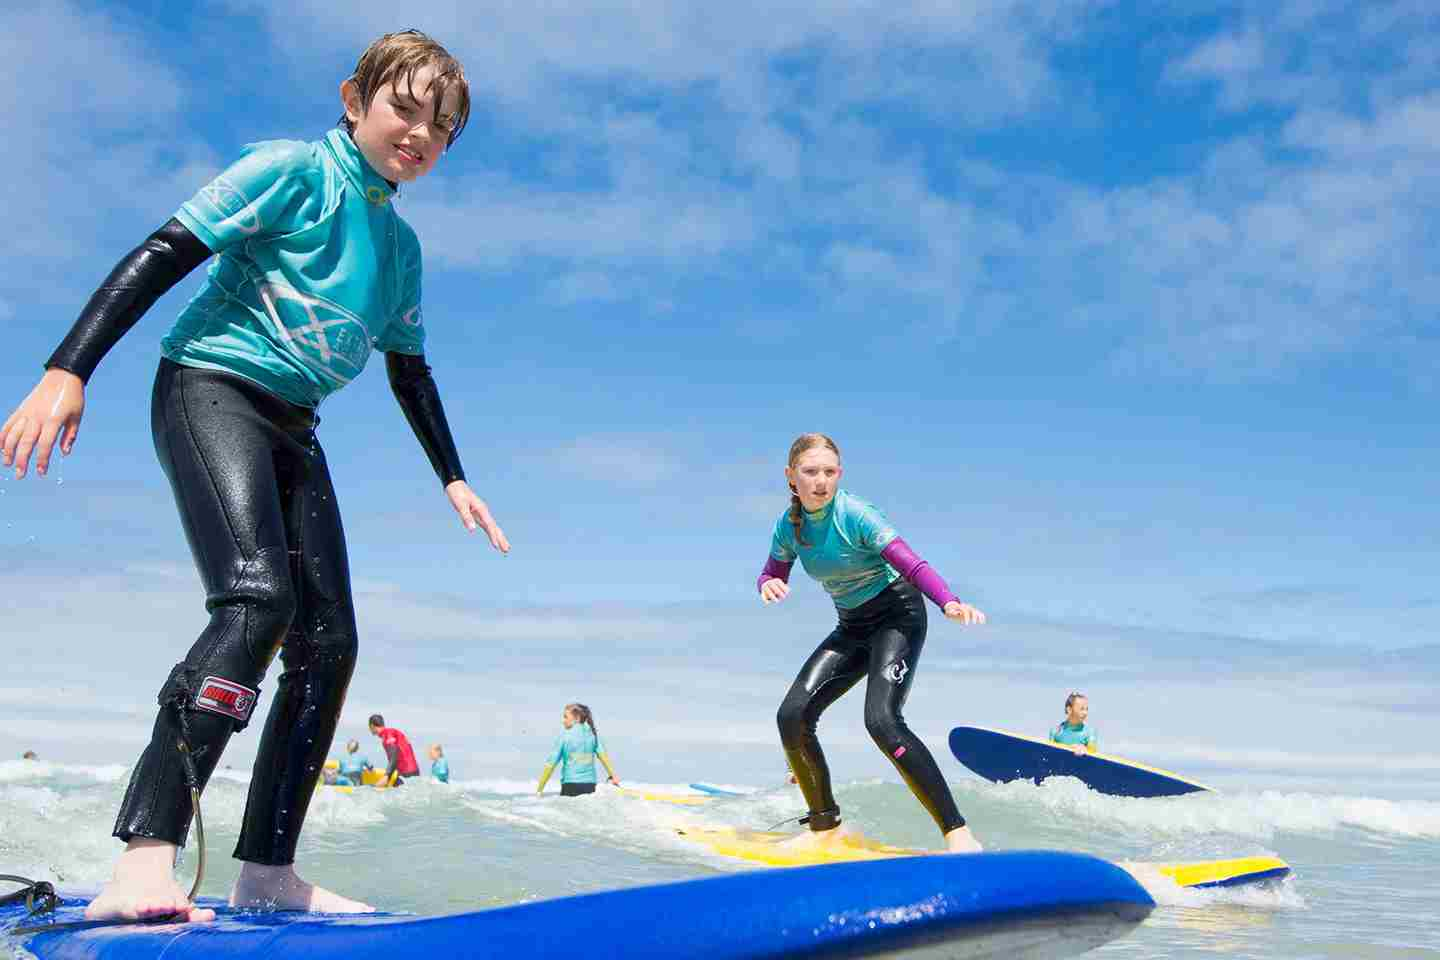 Surf Lesson With The Extreme Academy